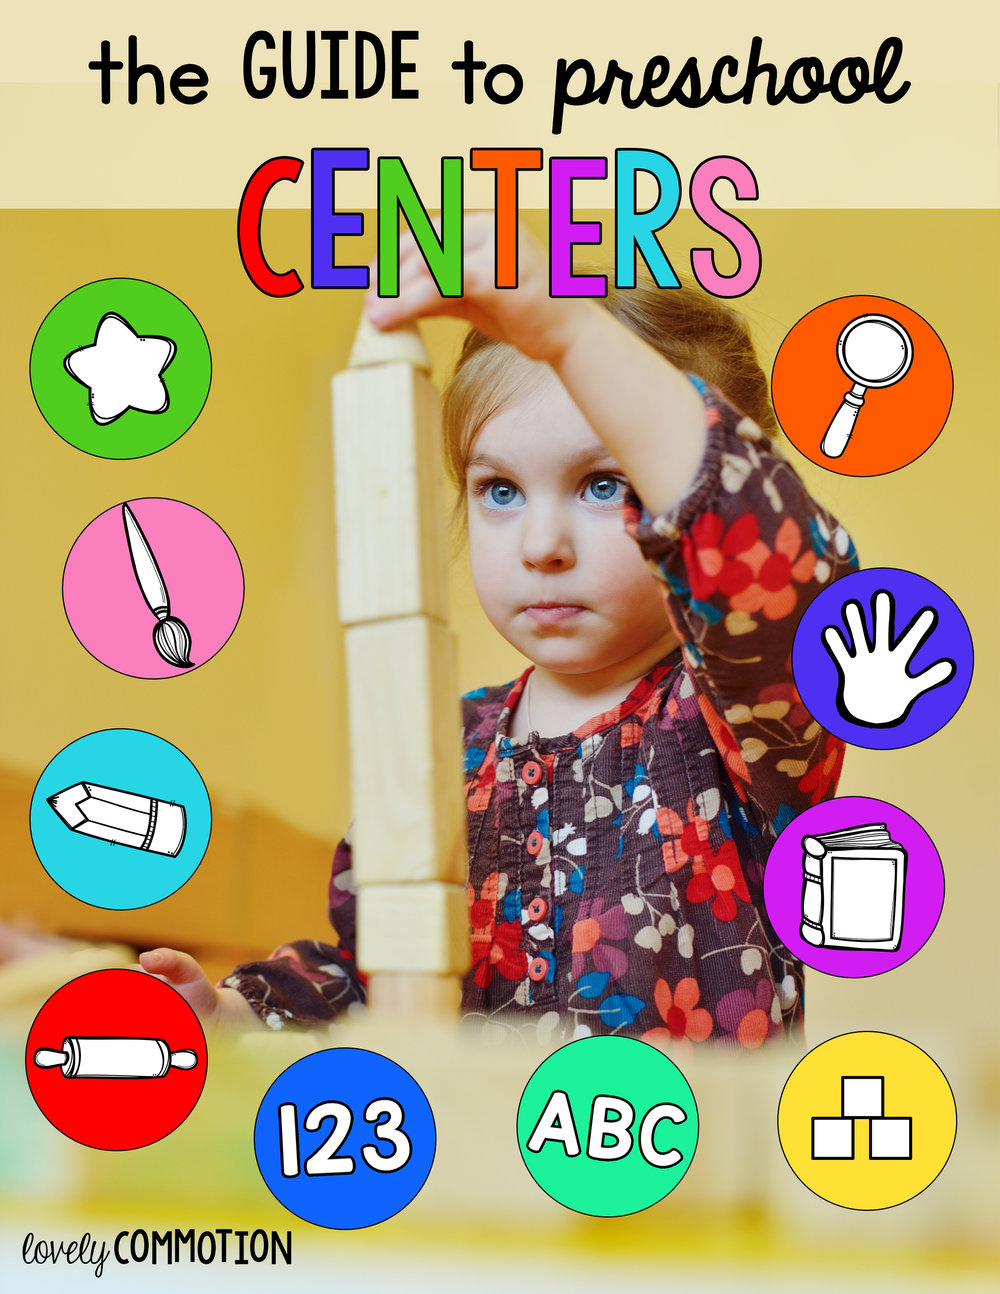 Guide to Preschool Centers